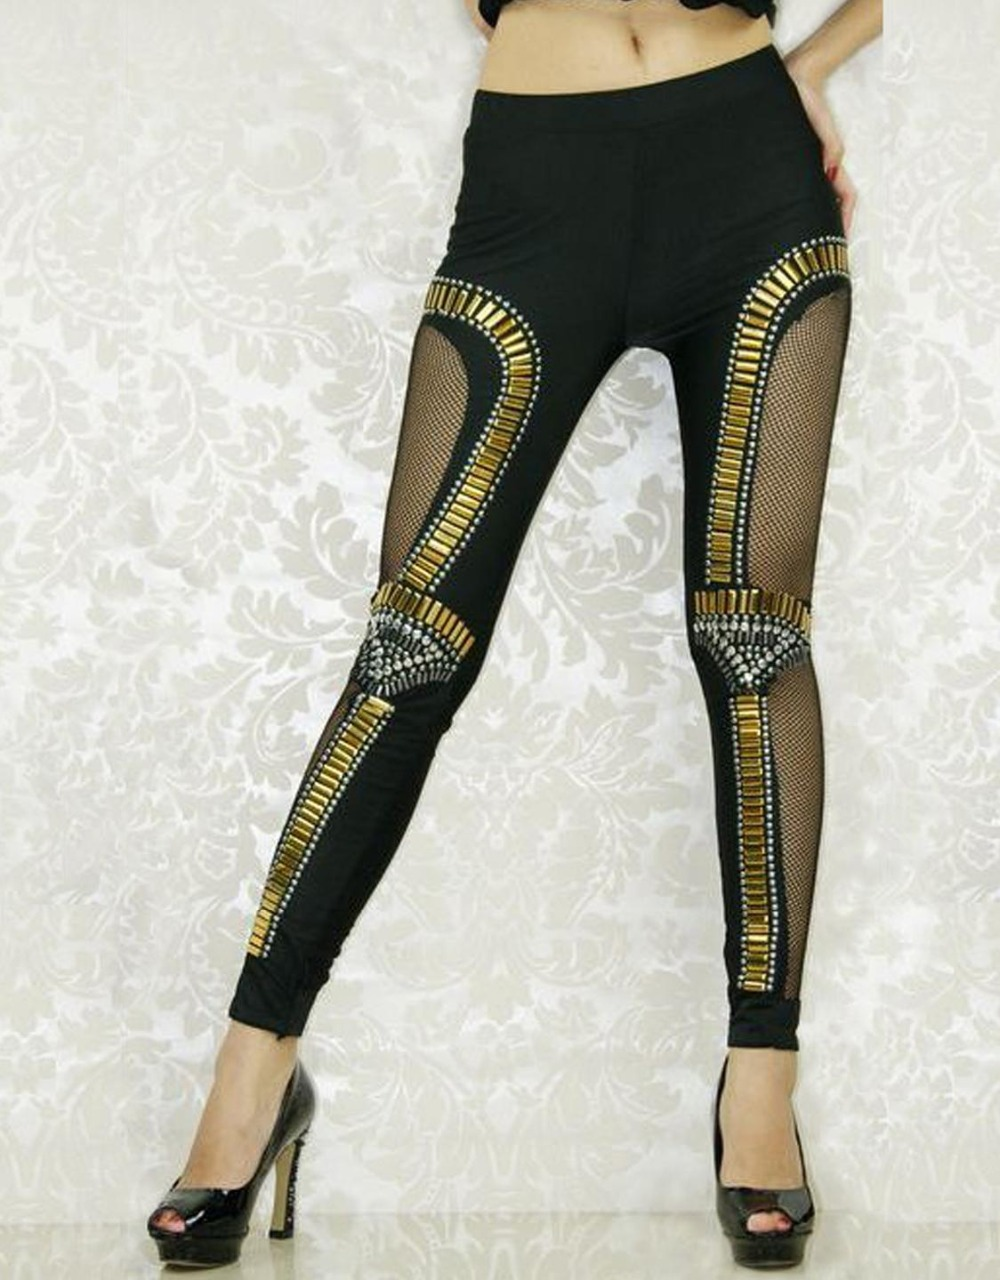 Hollow Out Bukser Ny eventyr Time Leggings Bro Ball Legging Gold Punk Sexet pige Hot Leggings WL7971